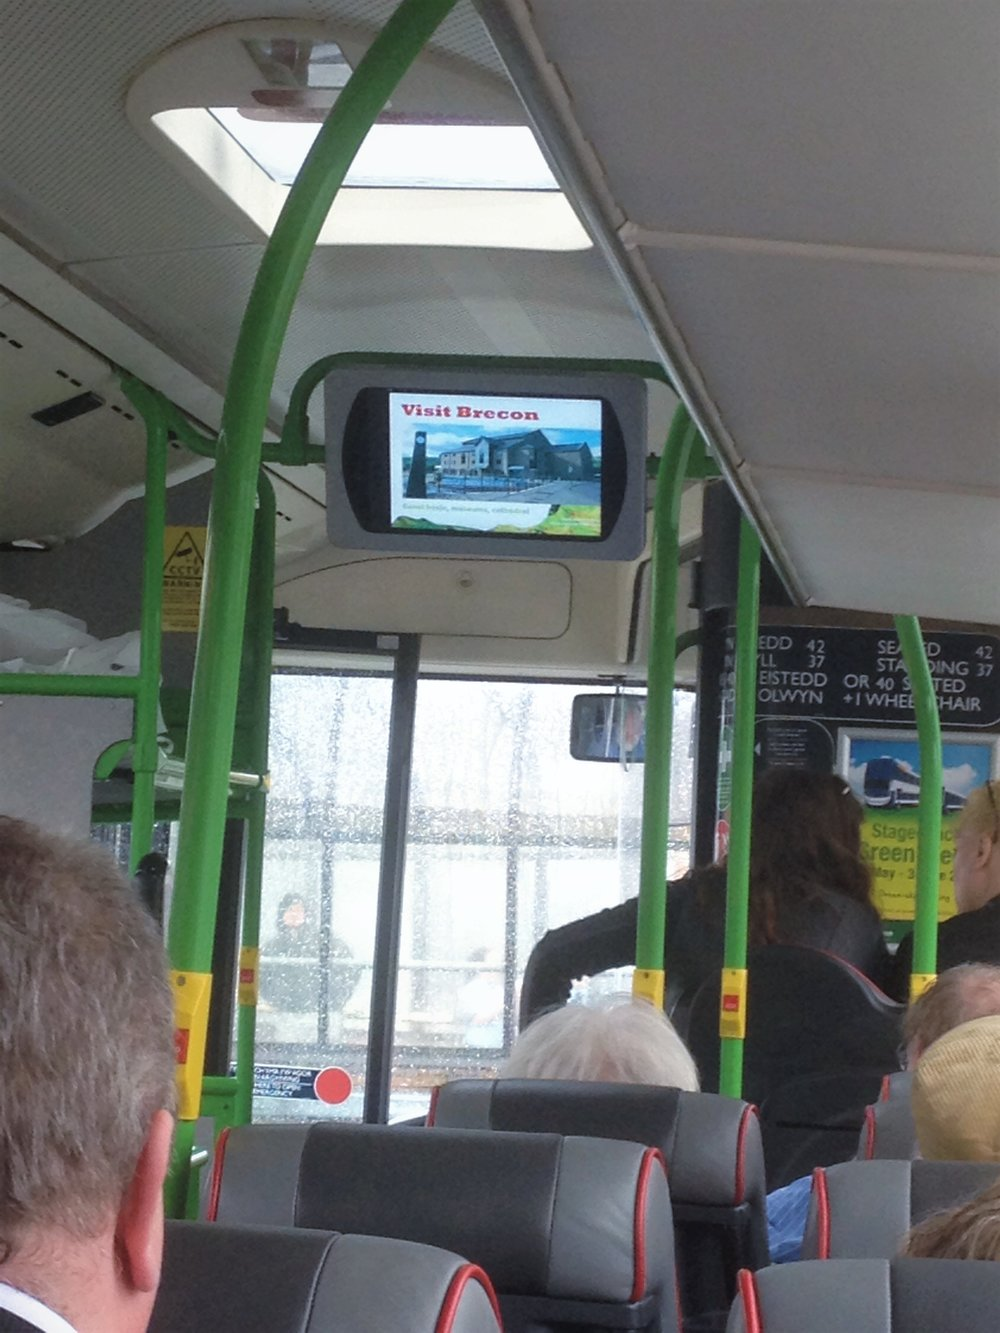 T4 bus - on our way to Brecon